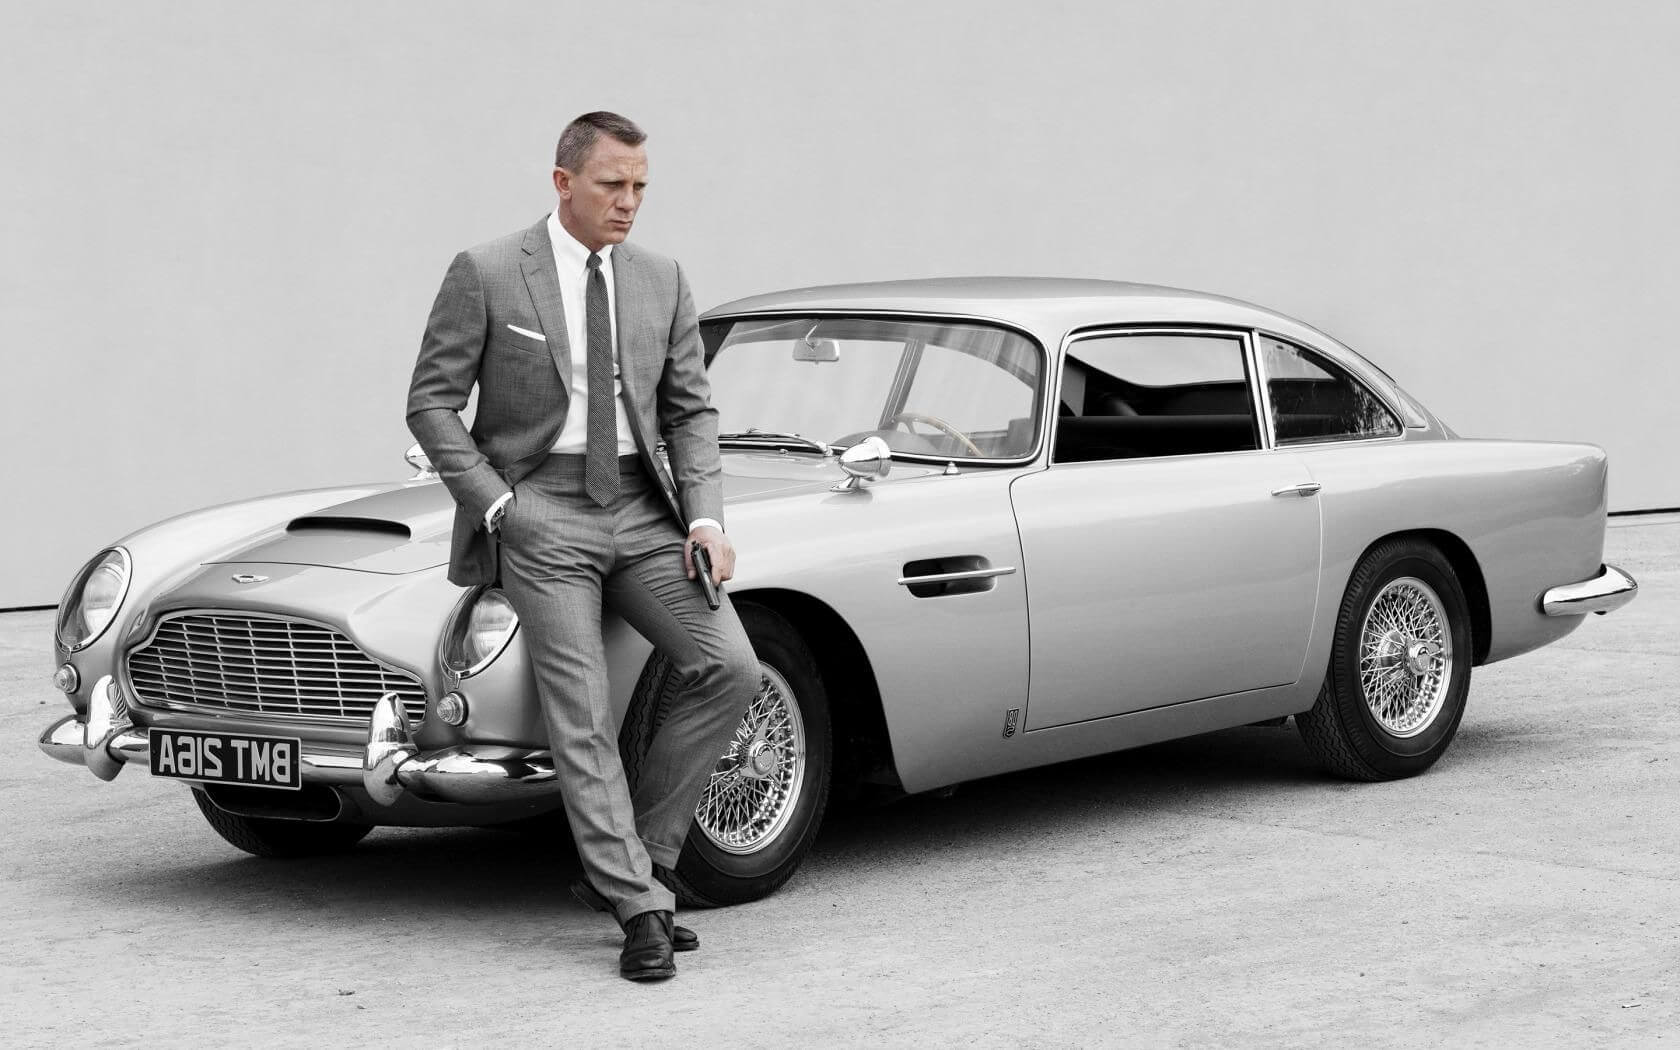 aston martin is rebuilding james bond's goldfinger db5 - techspot